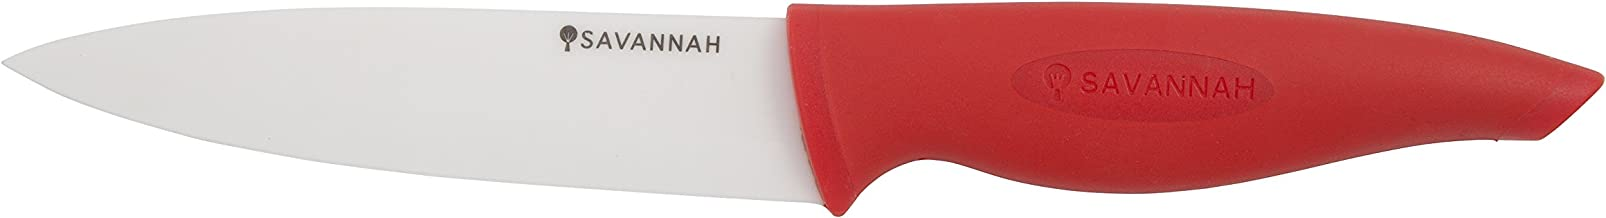 SAVANNAH SAV-0402 Ceramic Prep Knf & Sheath, 13cm, Red/White